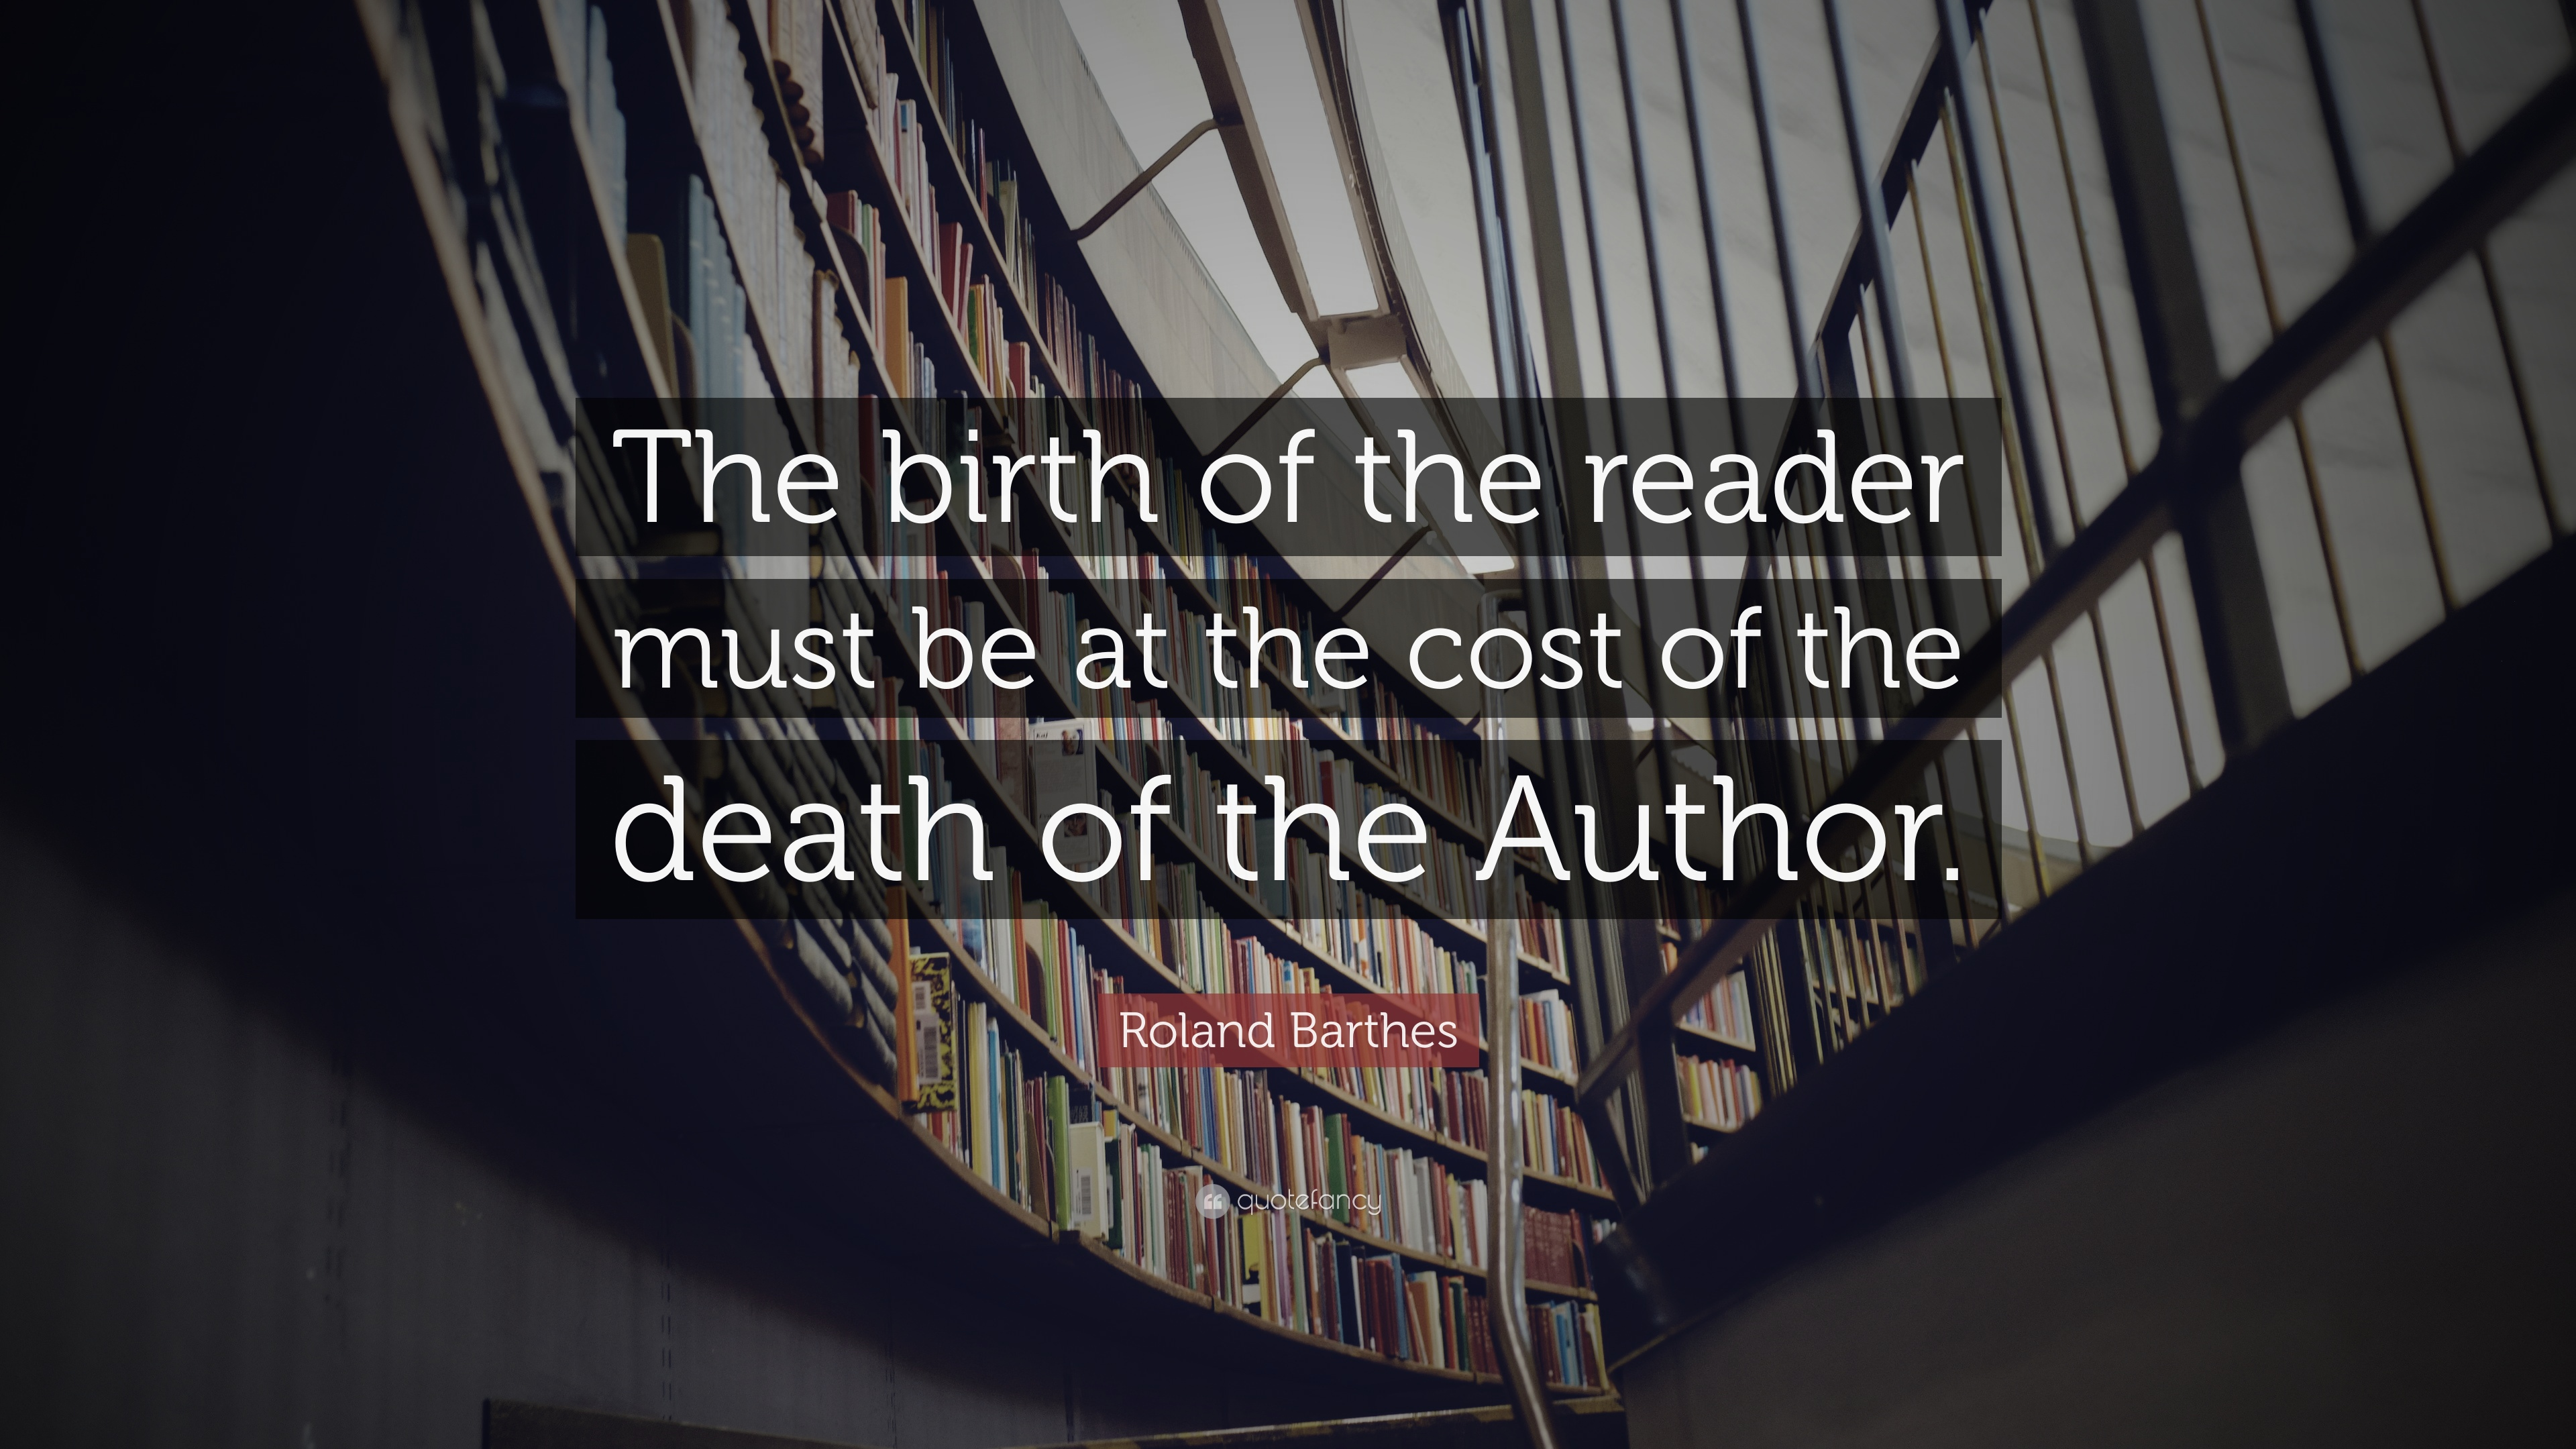 barthes death of the author essay Death of the author english literature essay in barthes essay 'death of the author' to distil meaning from the author's work this 'death' is directed at.